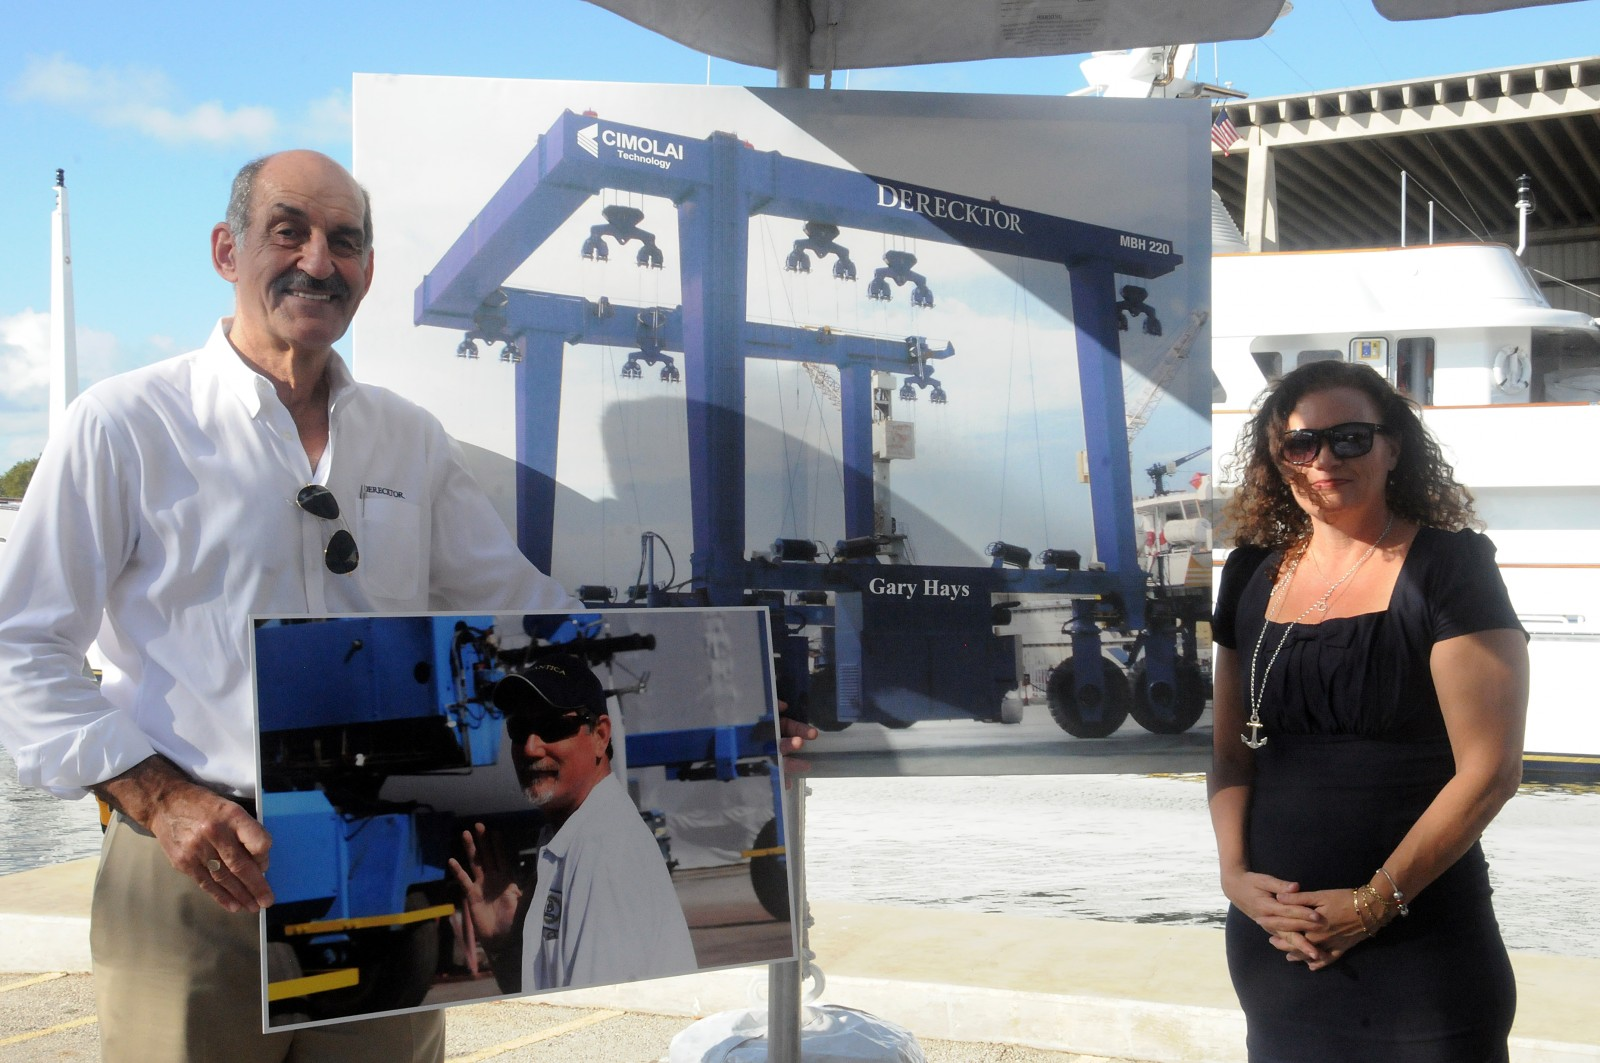 Derecktor Florida named the company's new 200-ton lift in memory of Gary Hays. James Brewer of Derecktor made the dedication announcement this morning at a marine industry appreciation breakfast. Lenora Monteleone-Hays received the honor in memory of her husband. PHOTO/SUZETTE COOK